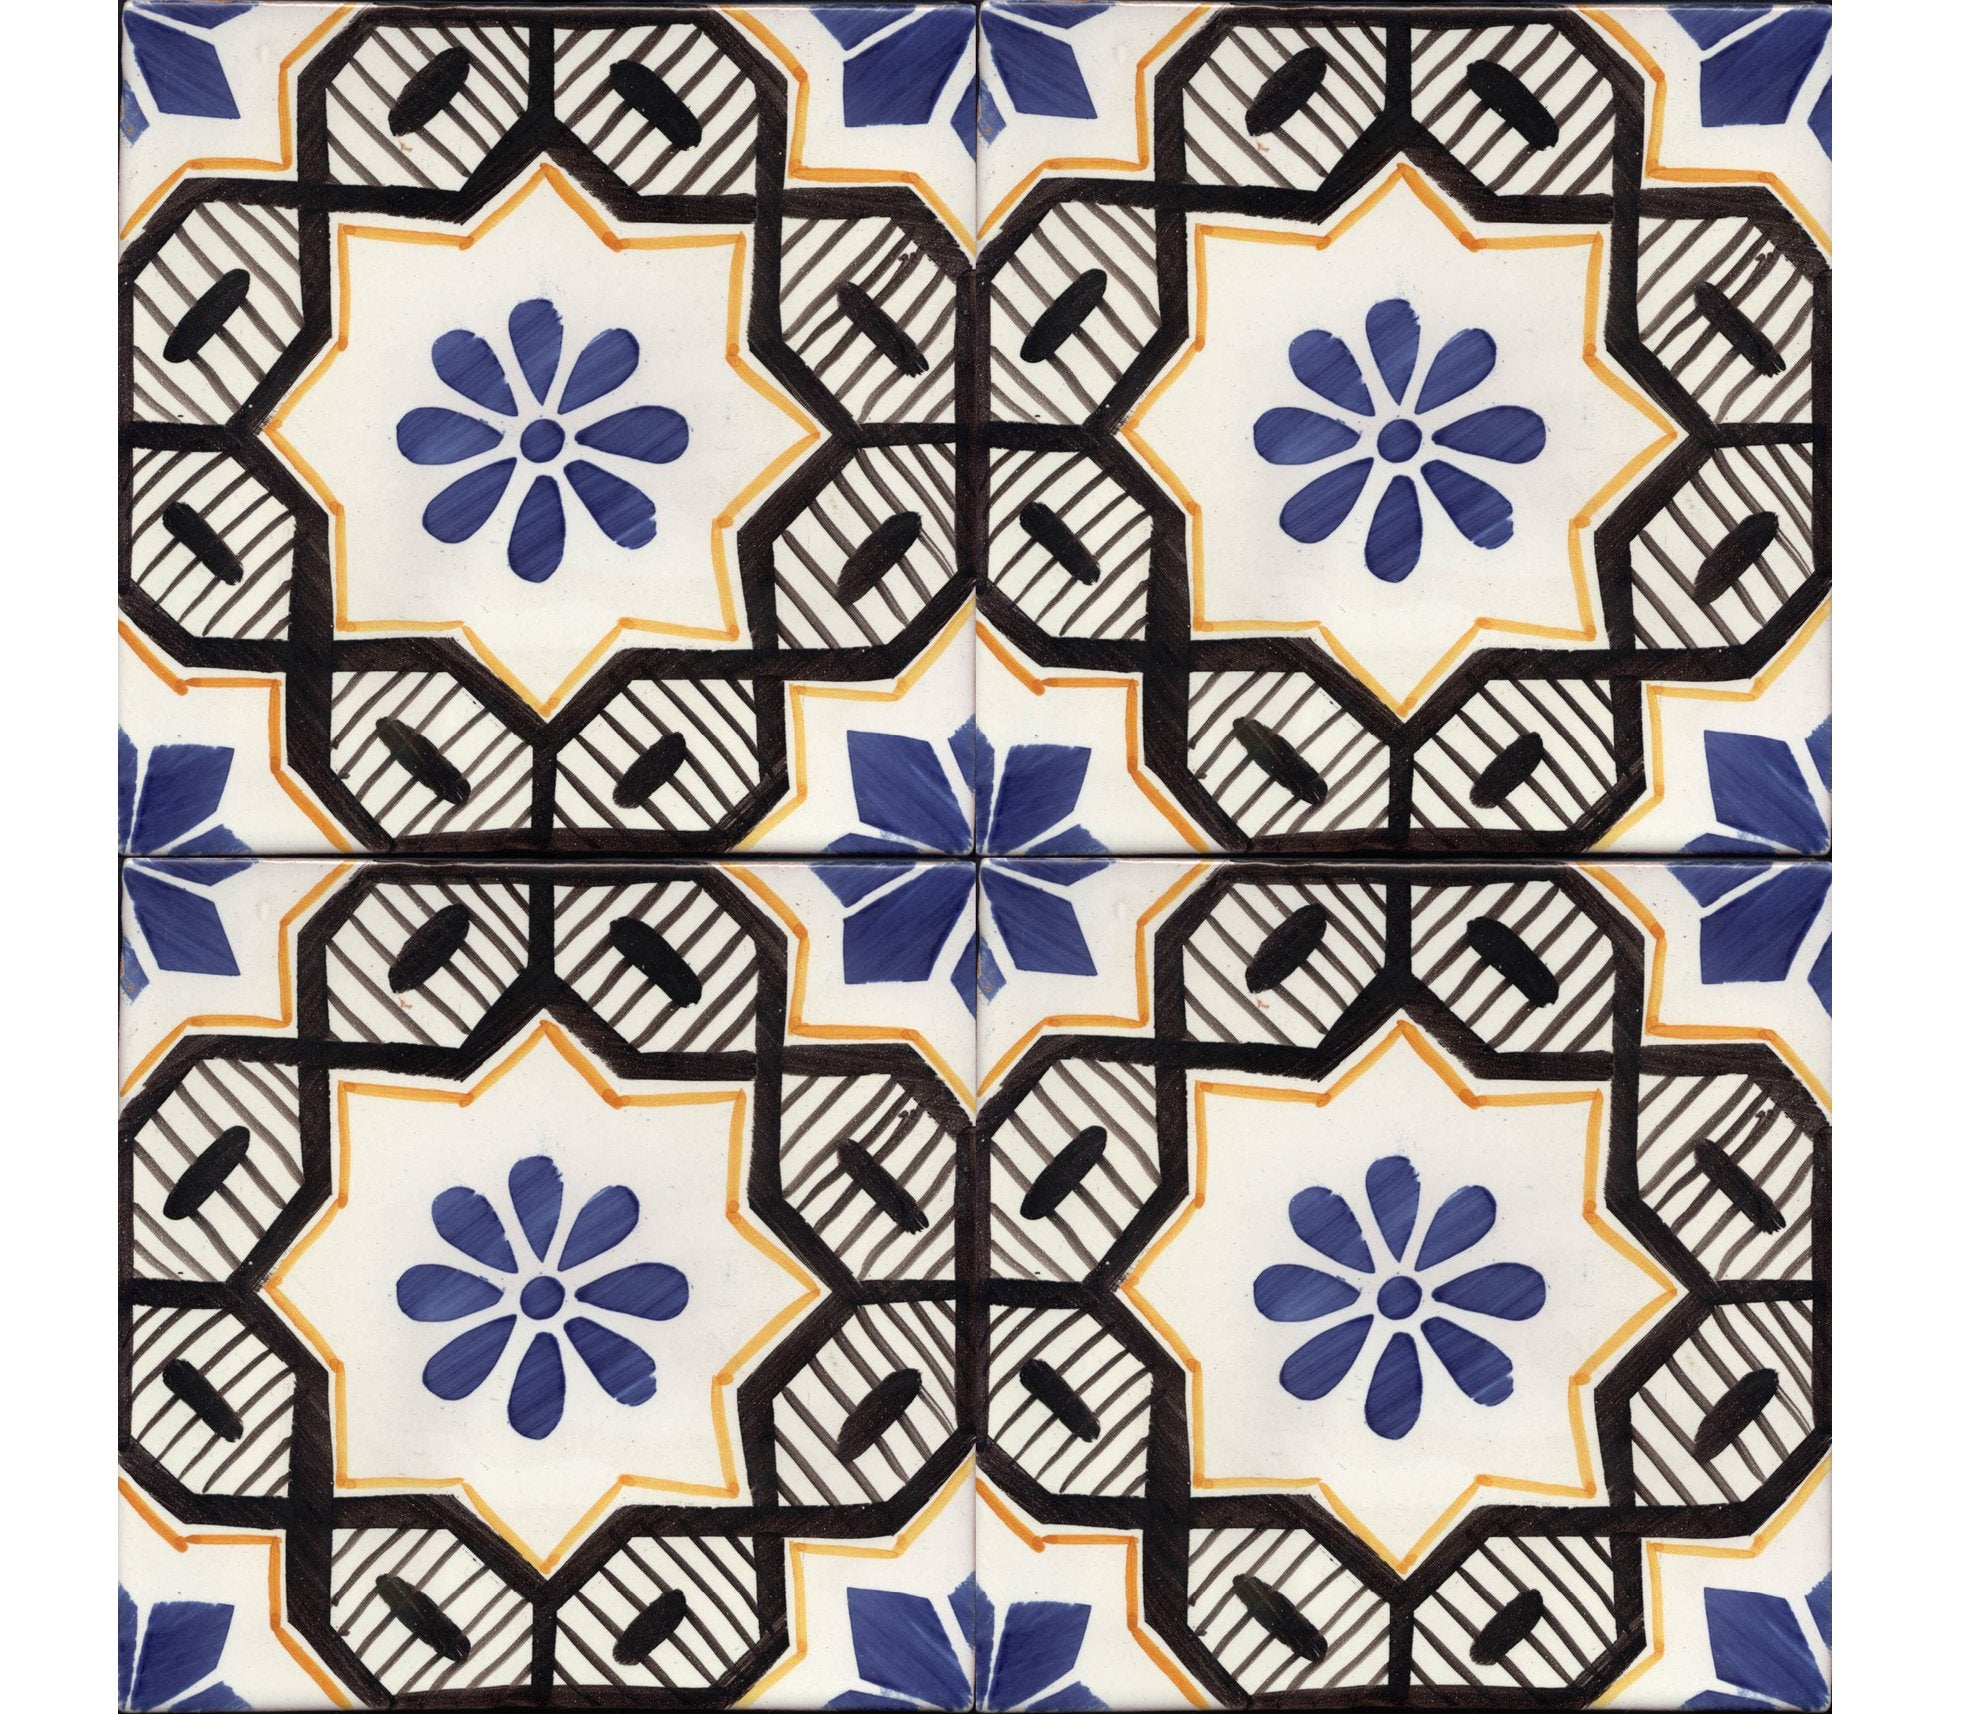 Series S Handpainted Tiles Product Image 25